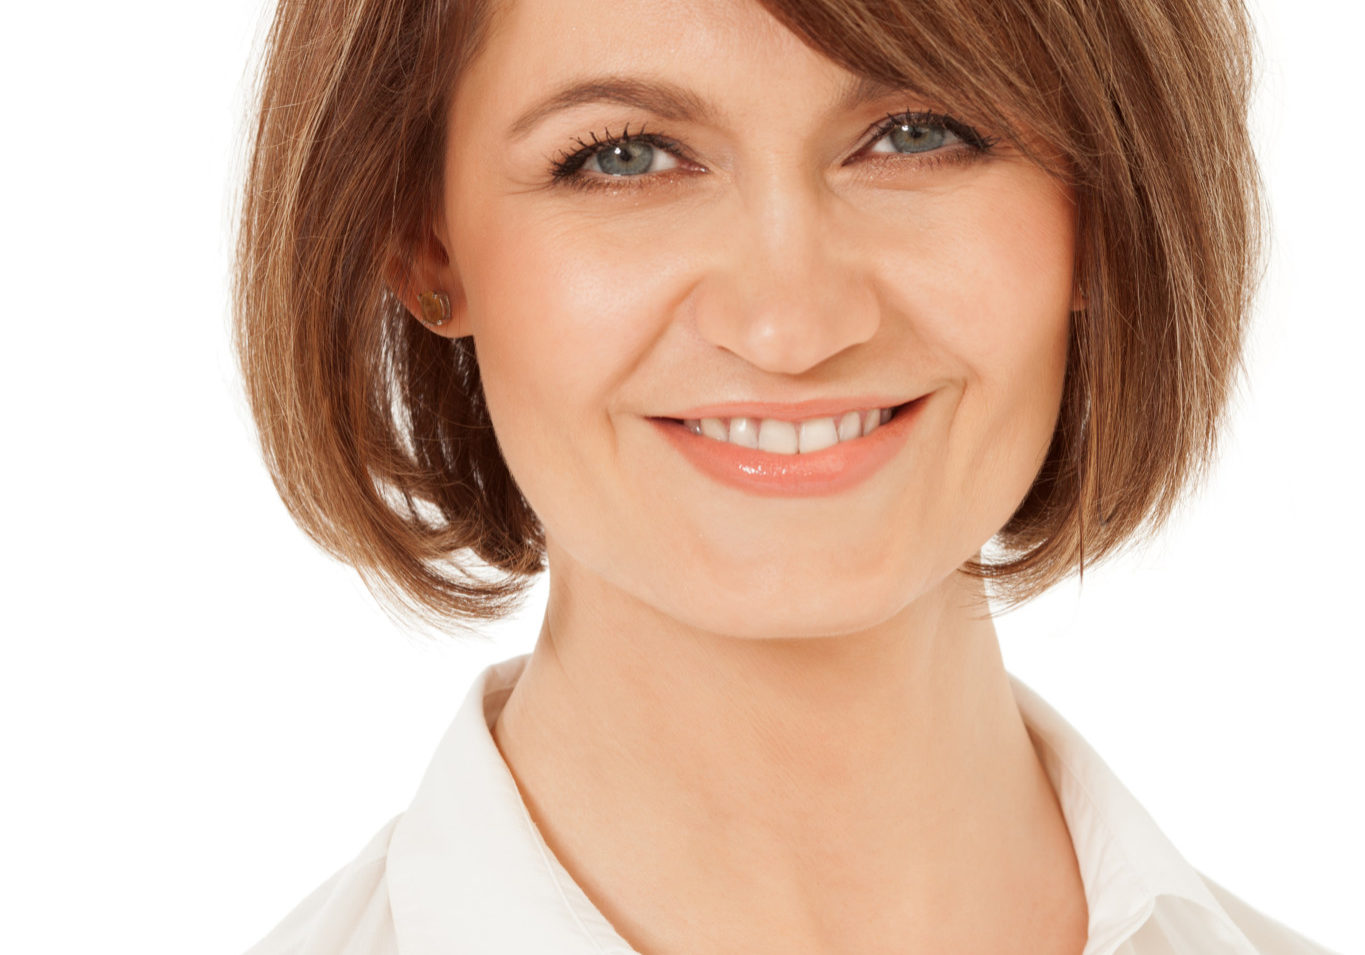 Close-up of smiling adult woman with short hair against of white background. Isolated.